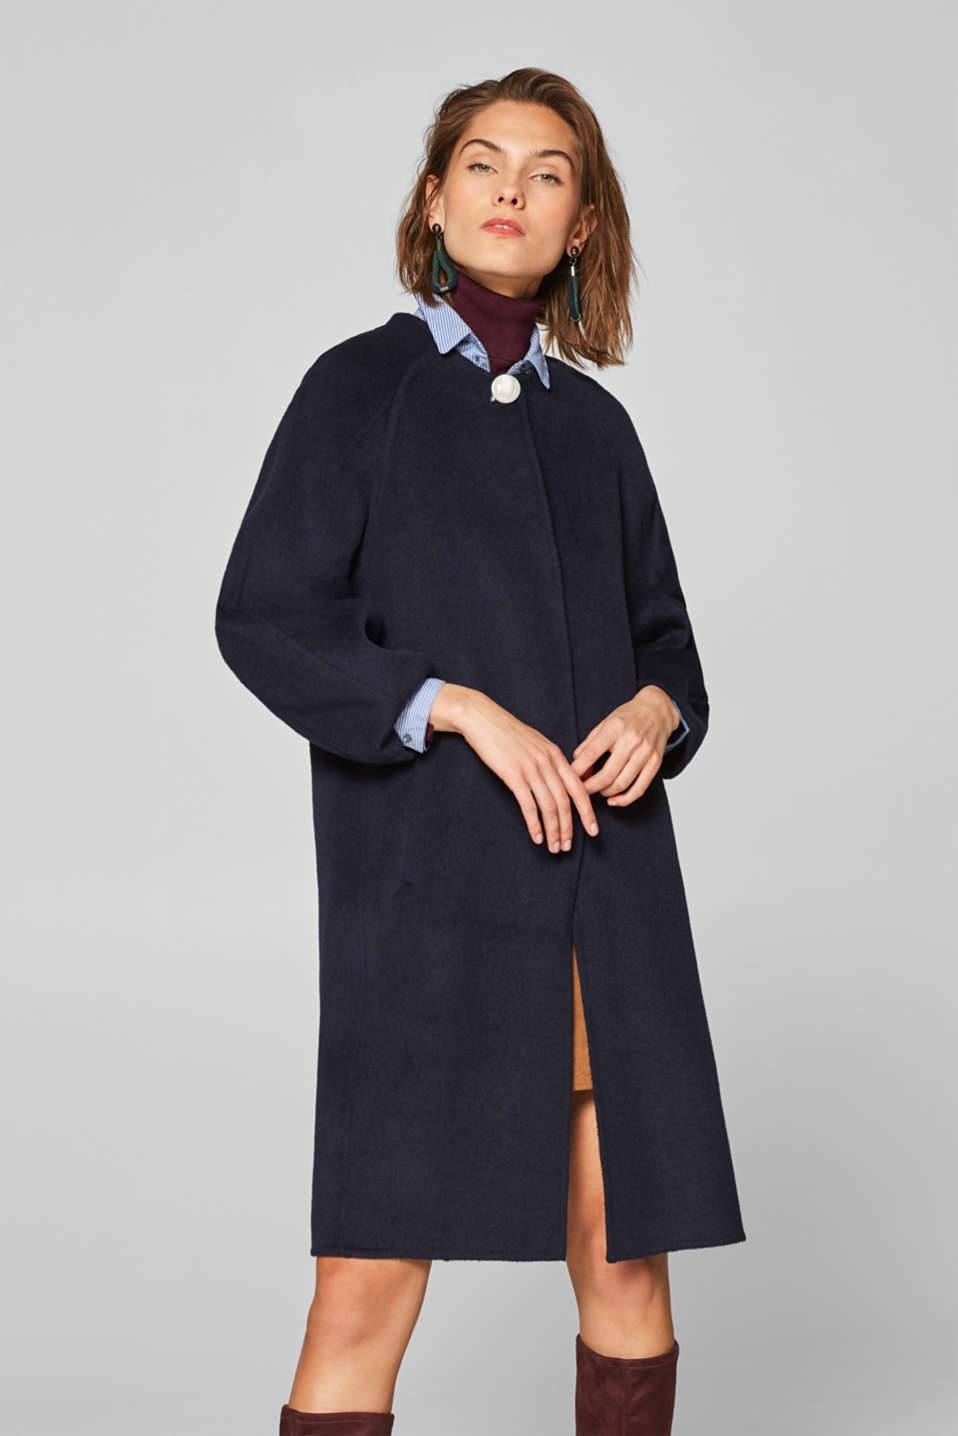 Esprit - Made of blended wool: coat with balloon sleeves